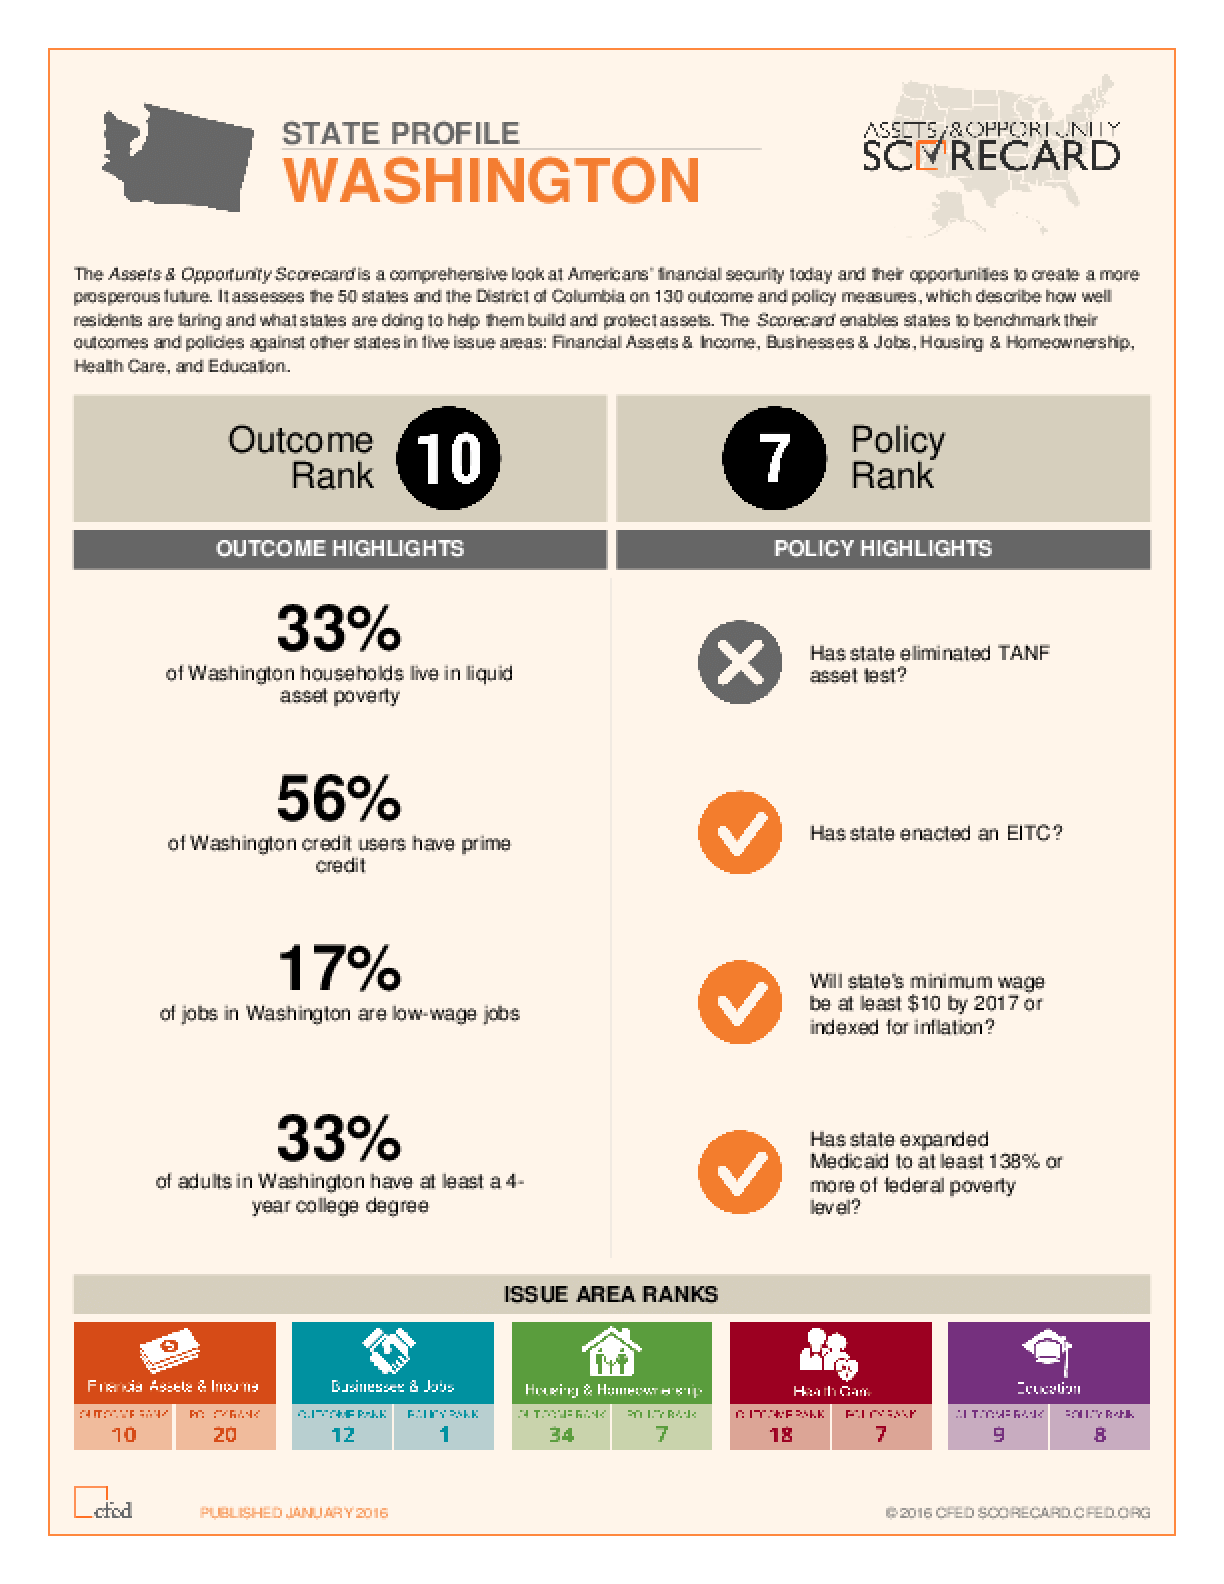 State Profile Washington: Assets and Opportunity Scorecard